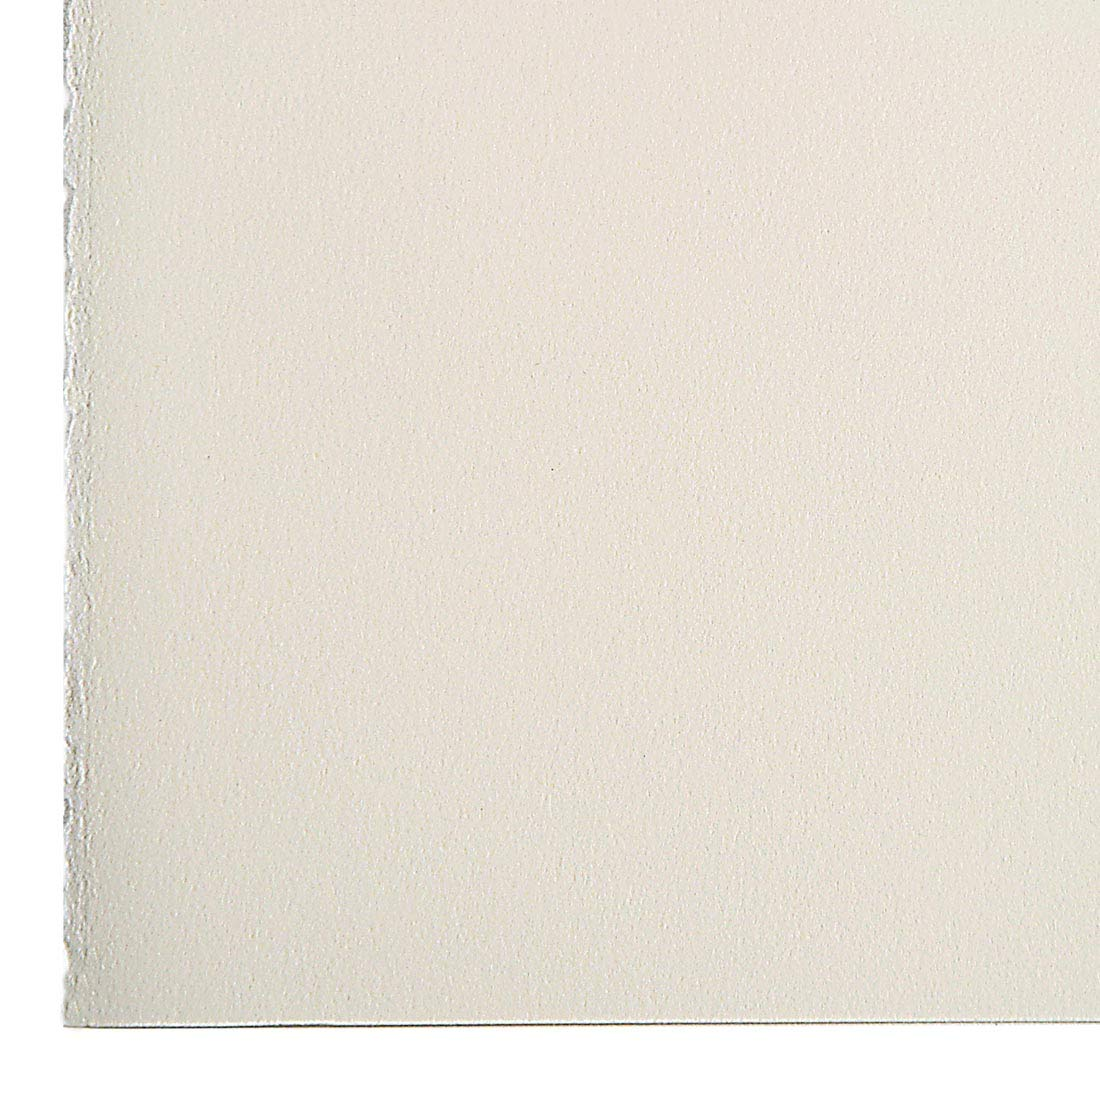 Arches BFK Rives, Lightweight Vellum Sheets 115 g, 48 x 66 cm, Pack of 10, Cream White by ARCHES